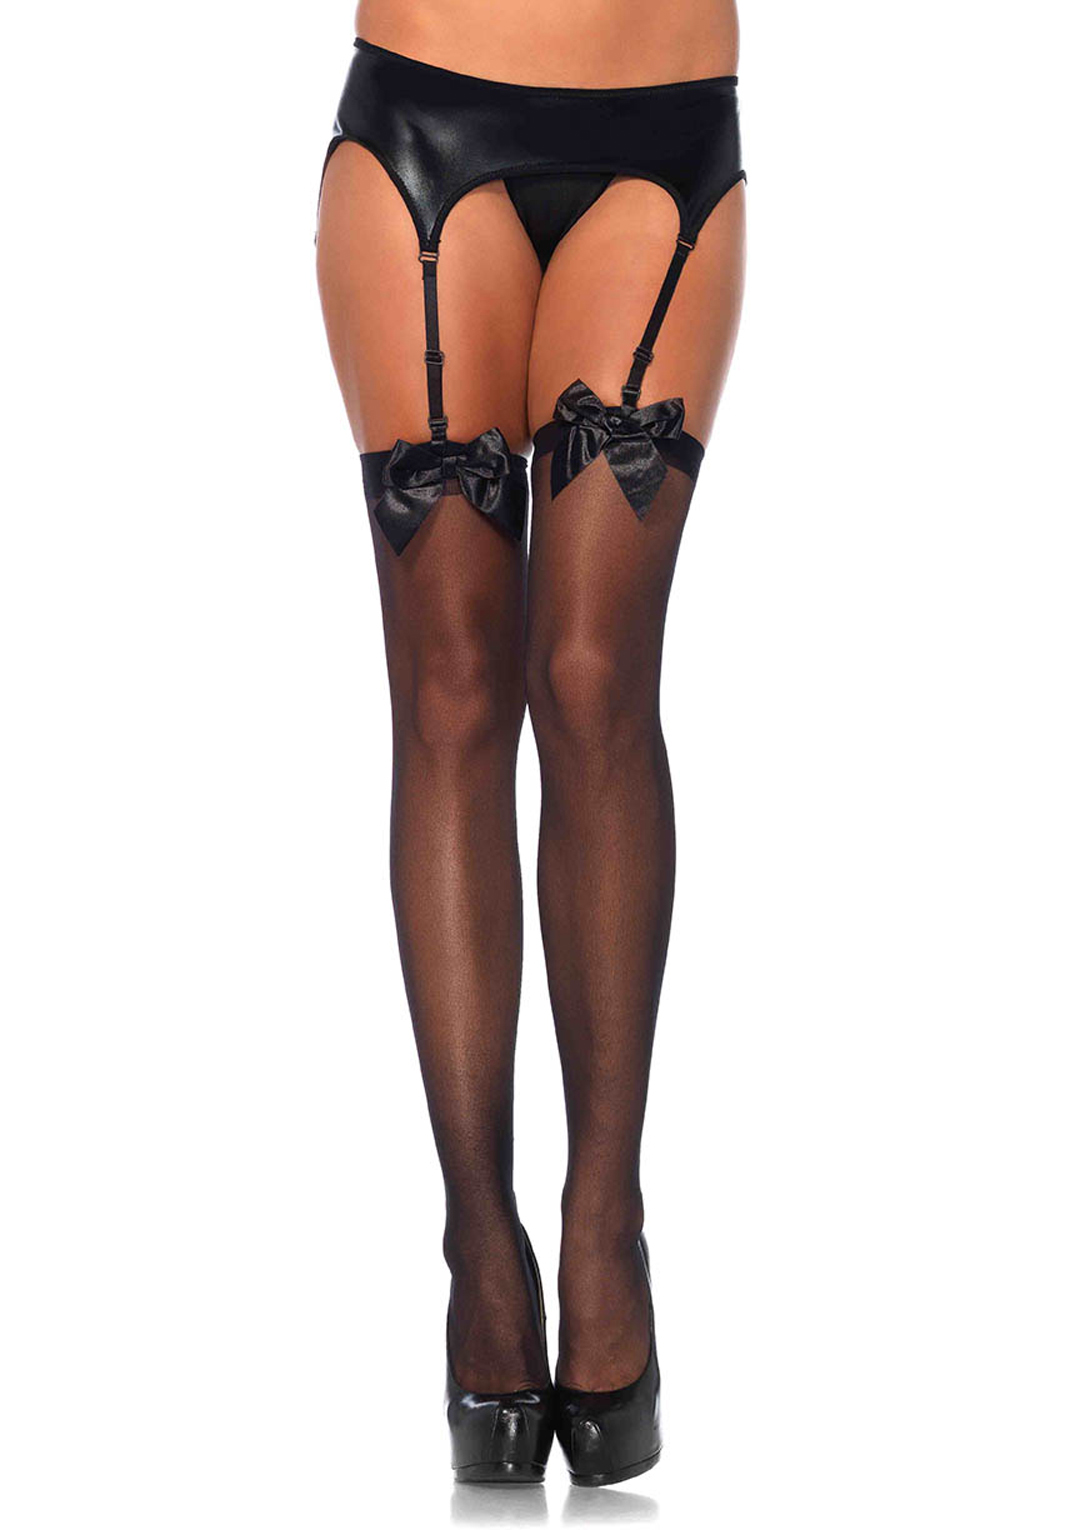 5deef8fb361 Leg Avenue 1911 Sheer Thigh High Nylon Stocking With Satin Bow White. About  this product. Stock photo  Picture 1 of 2 ...